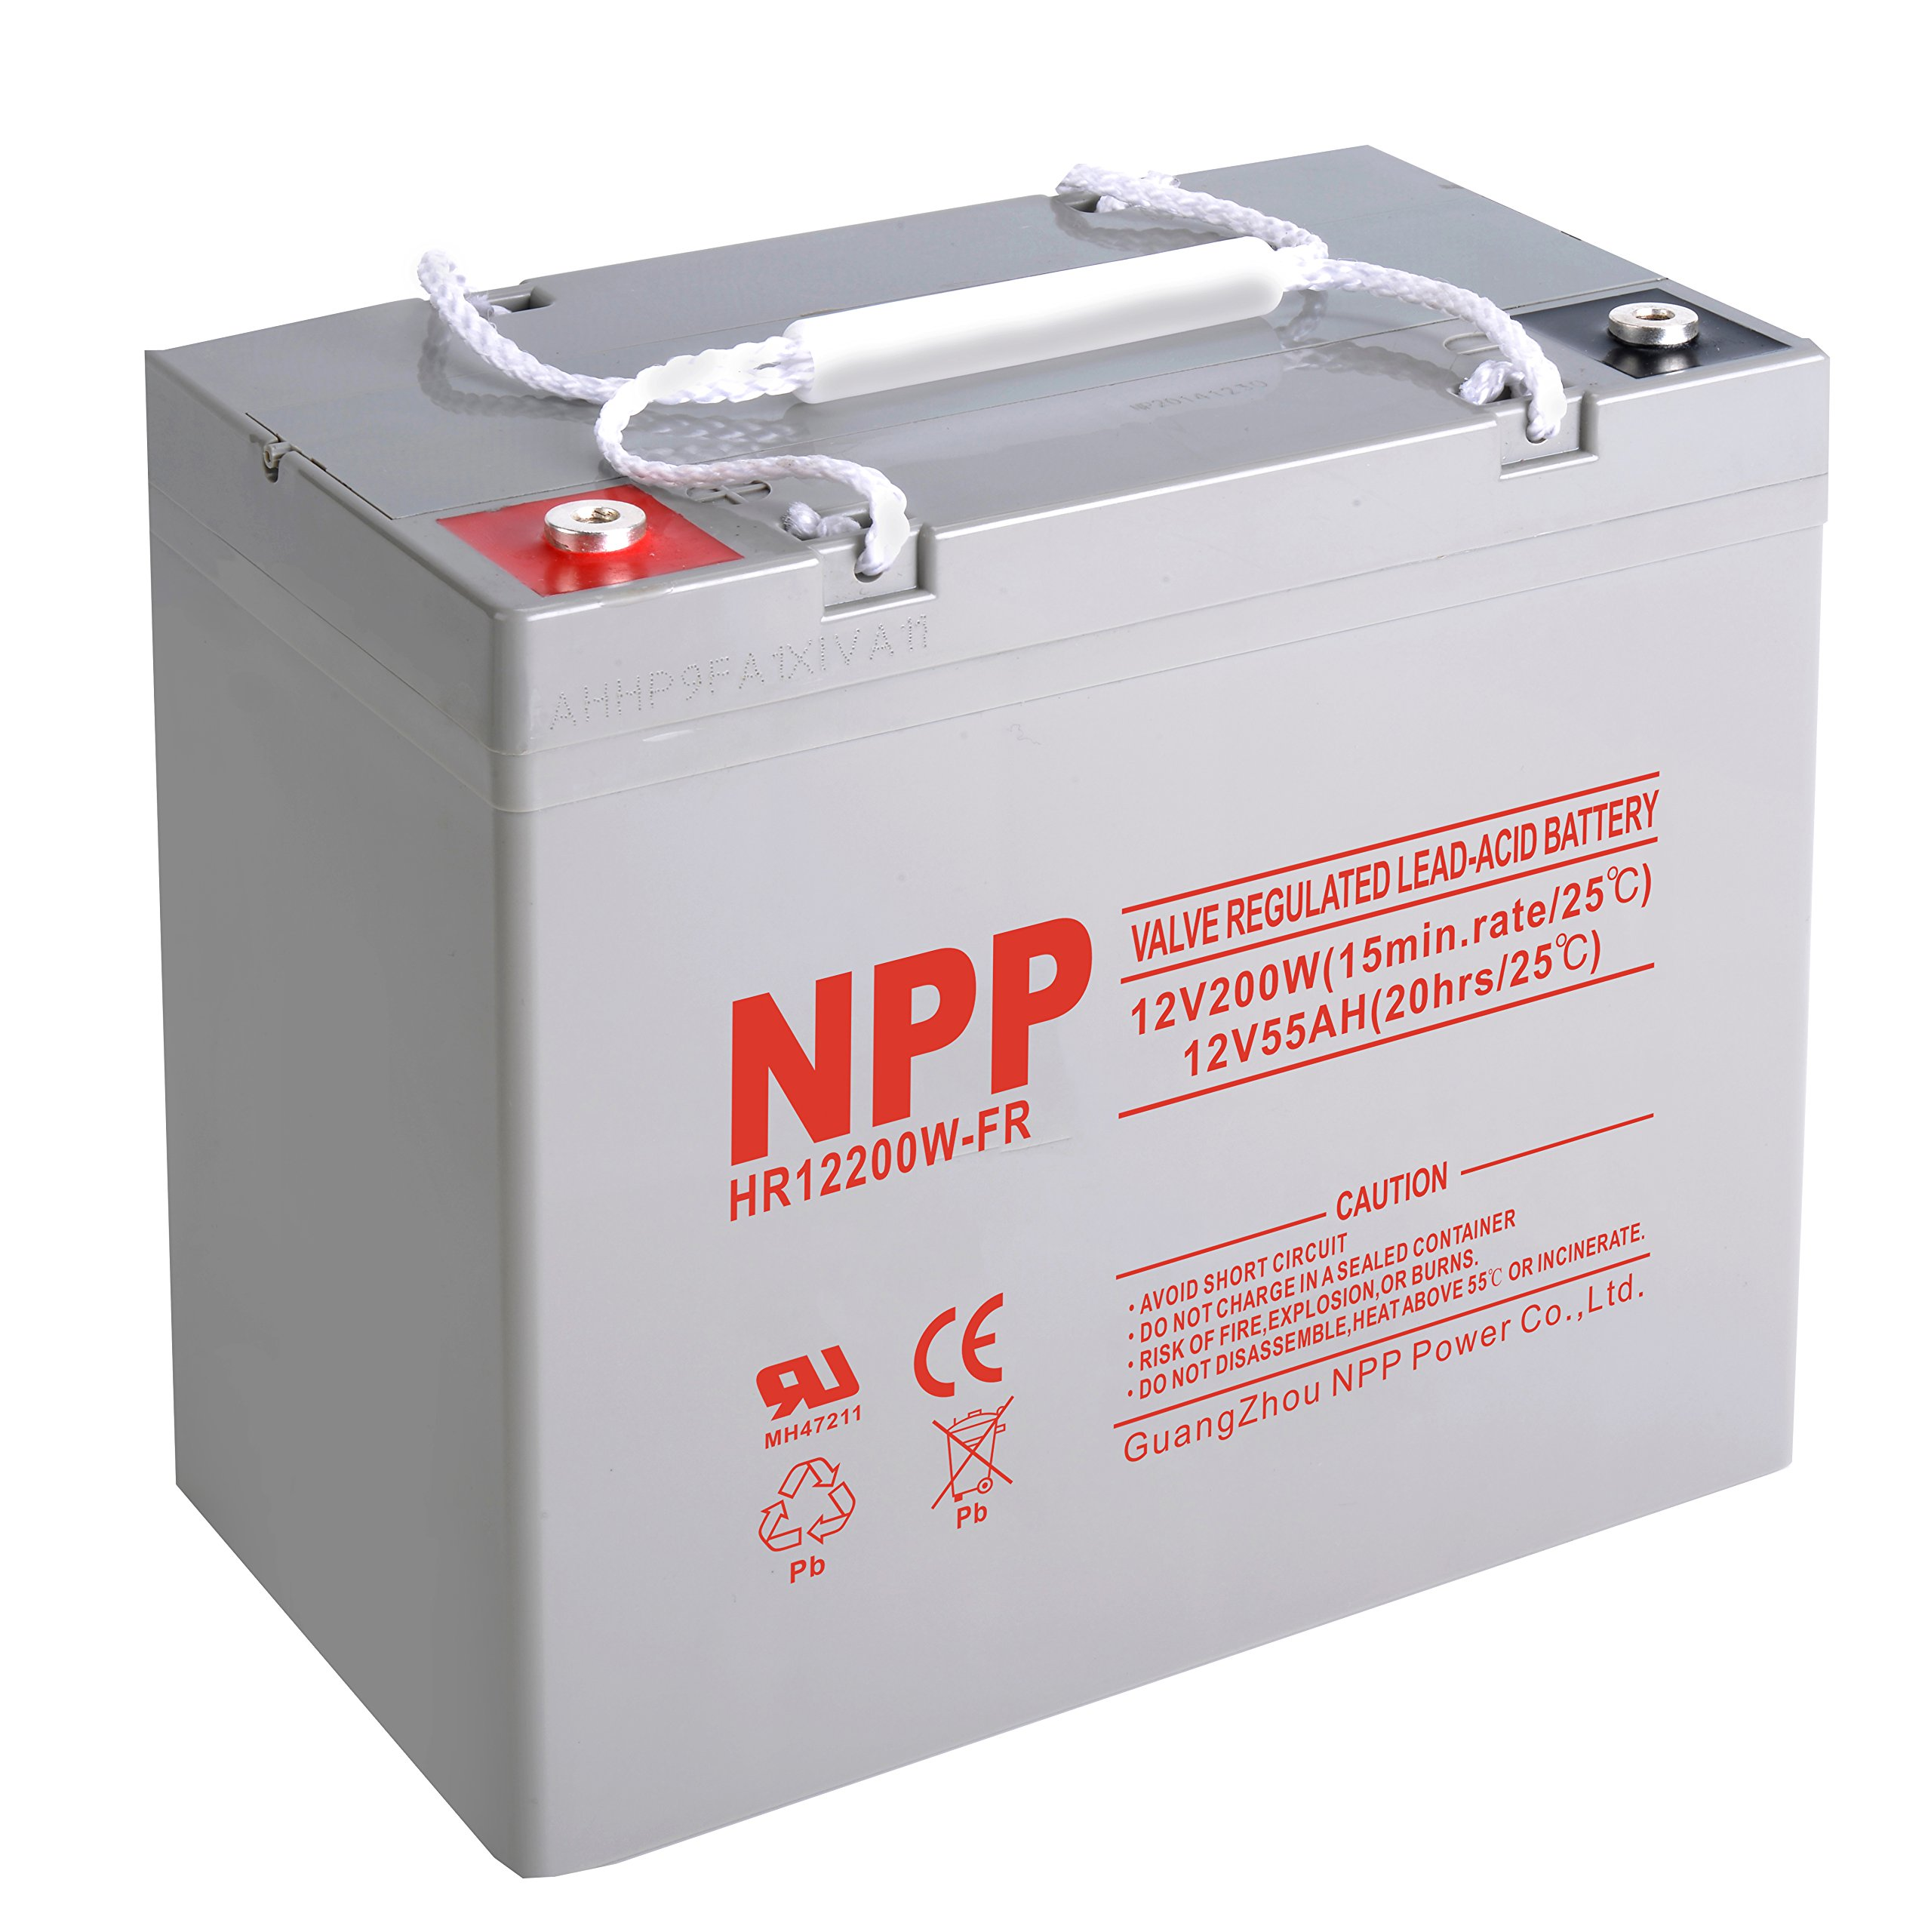 NPP HR12200W FR 12V 200W 12Volt 55 Amp High Rate Rechargeable AGM Lead Acid UPS Battery